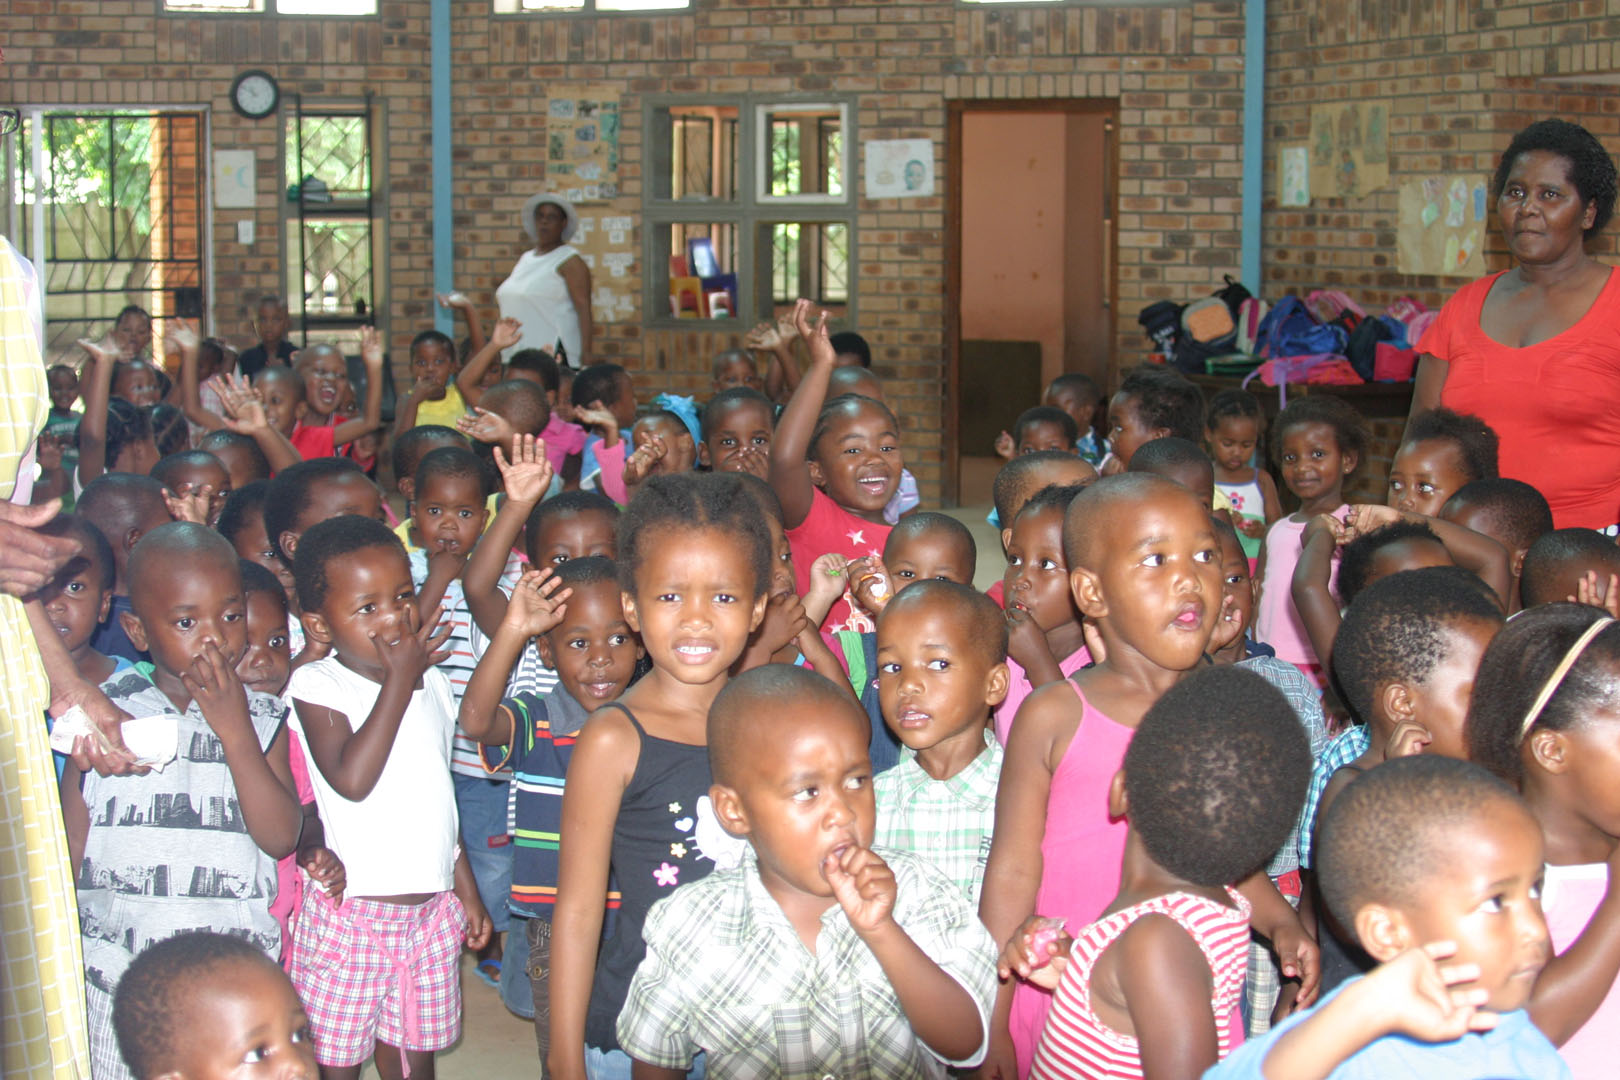 King Dinazulu Creche holds many children, up to 200 in a old one-room warehouse brick building